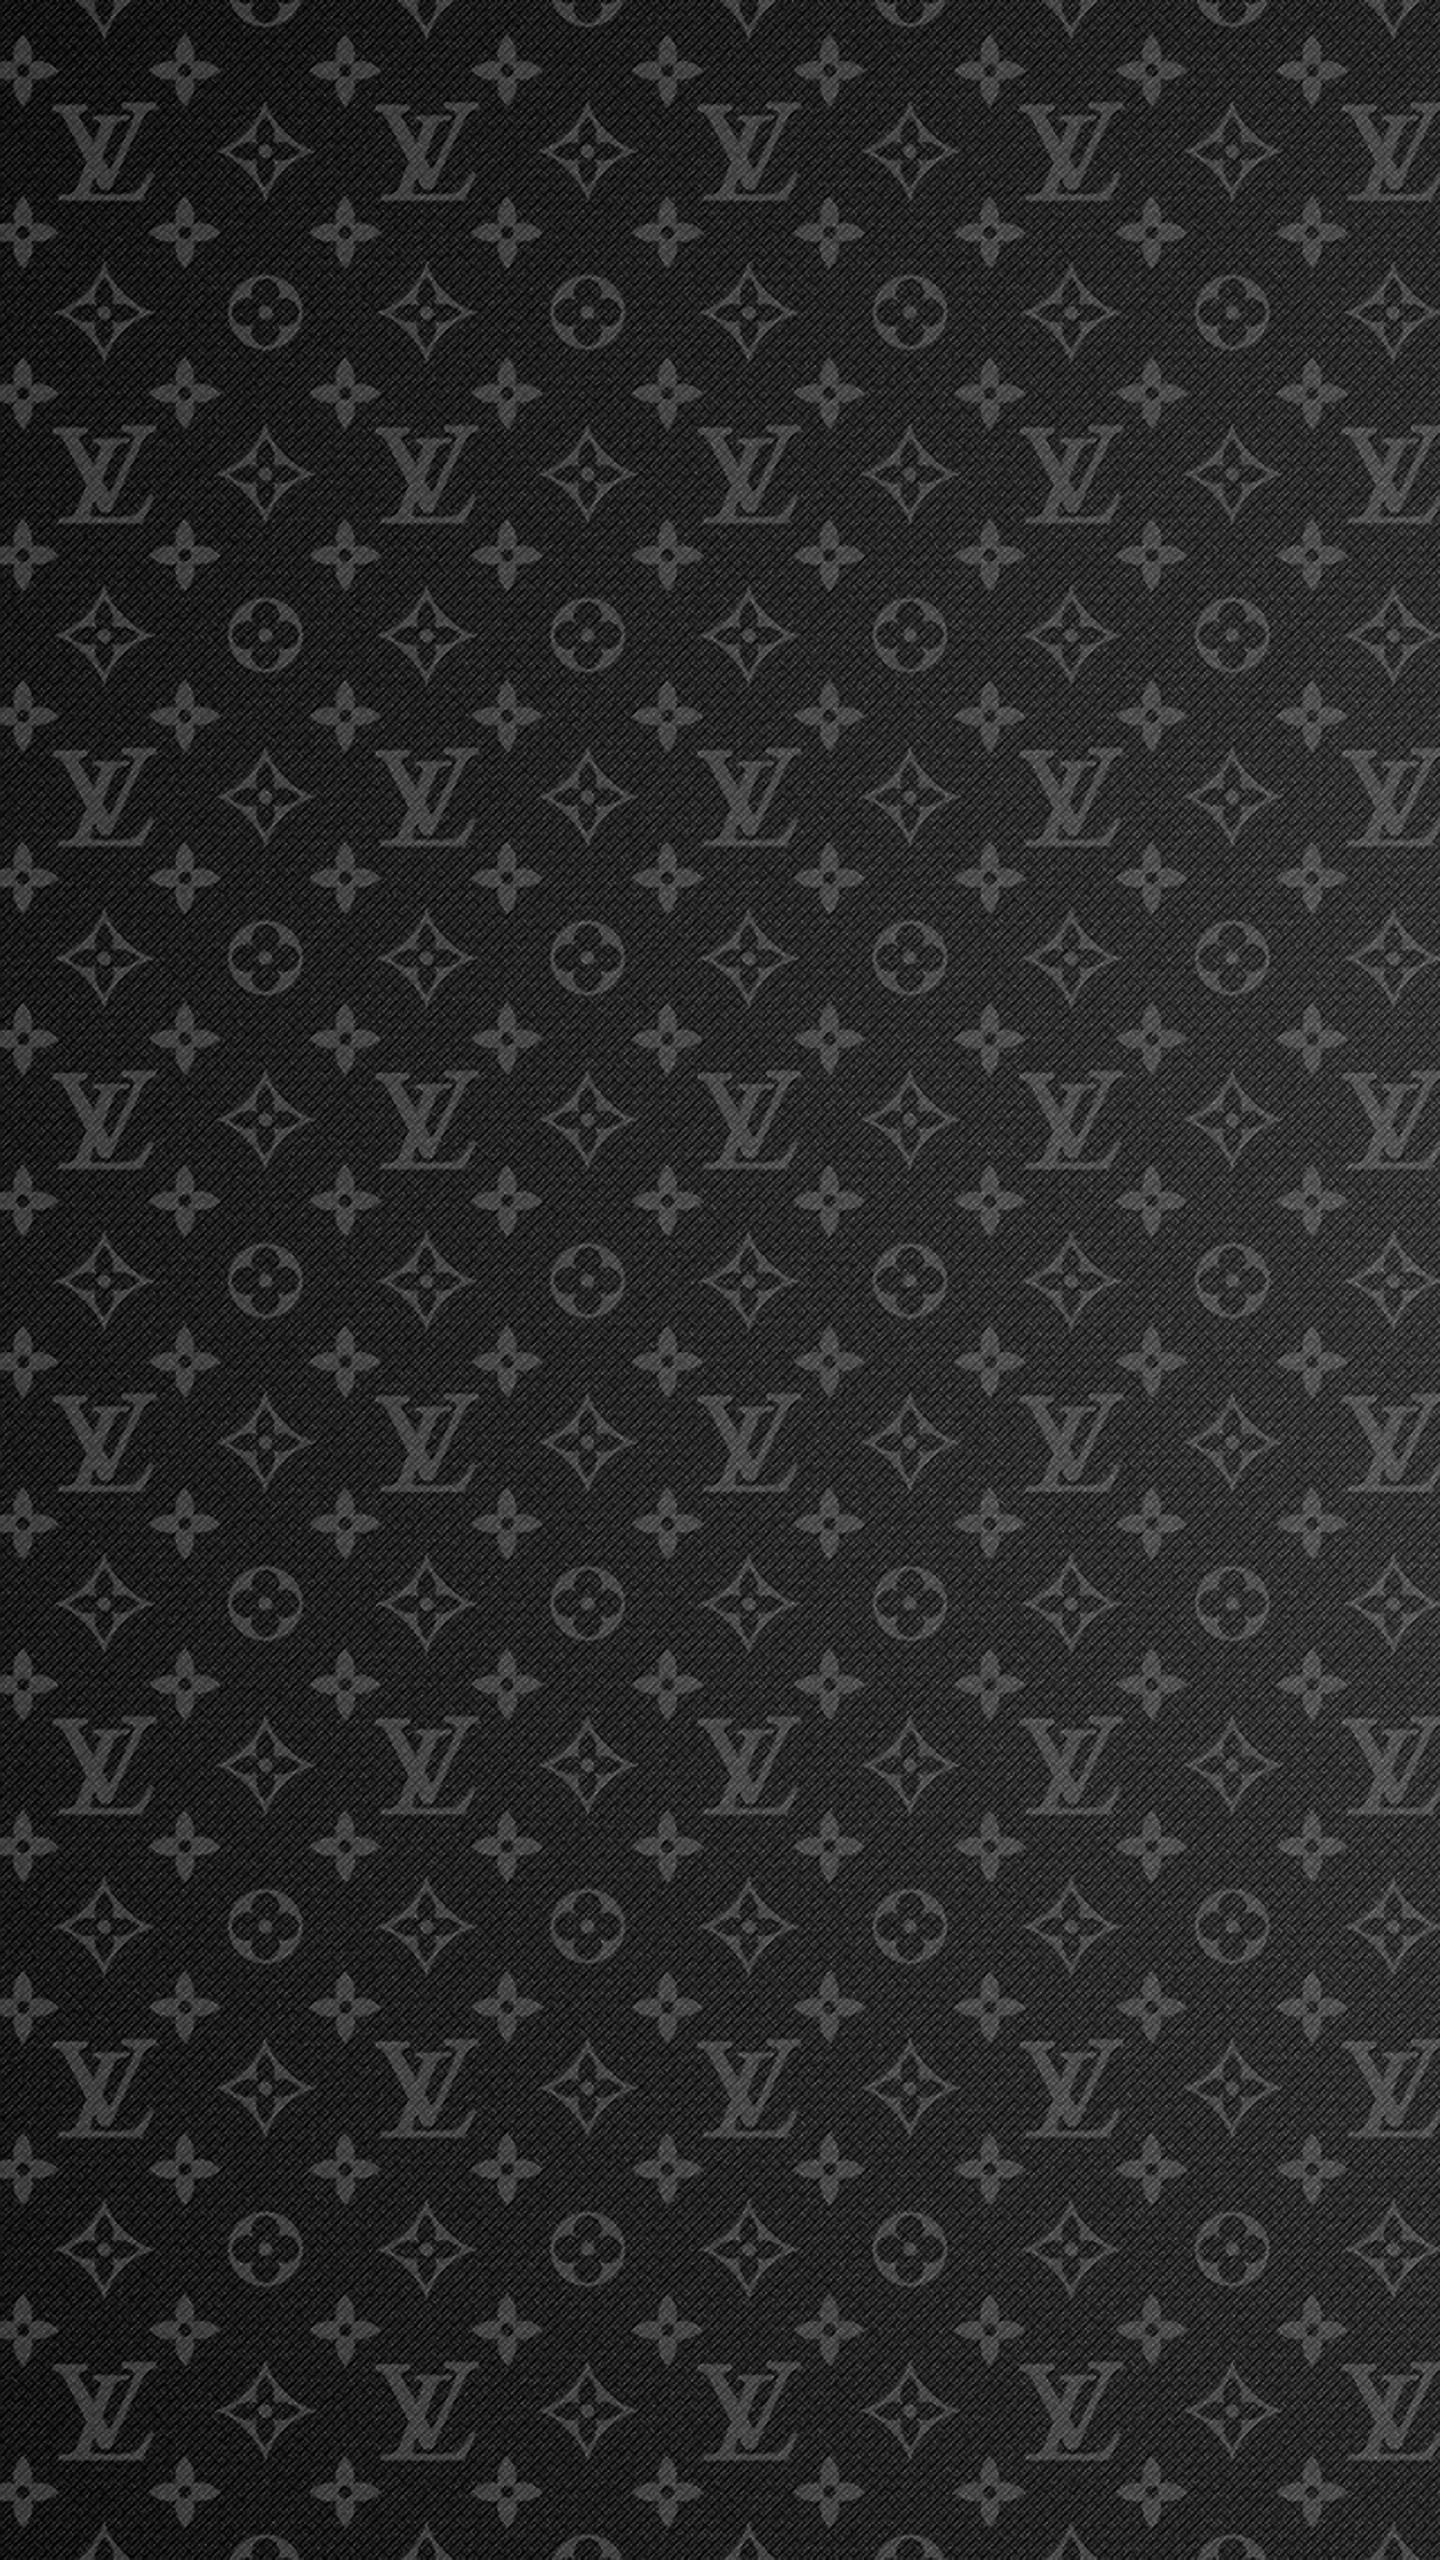 Great Wallpaper Macbook Louis Vuitton - 470305  Best Photo Reference_175046.jpg